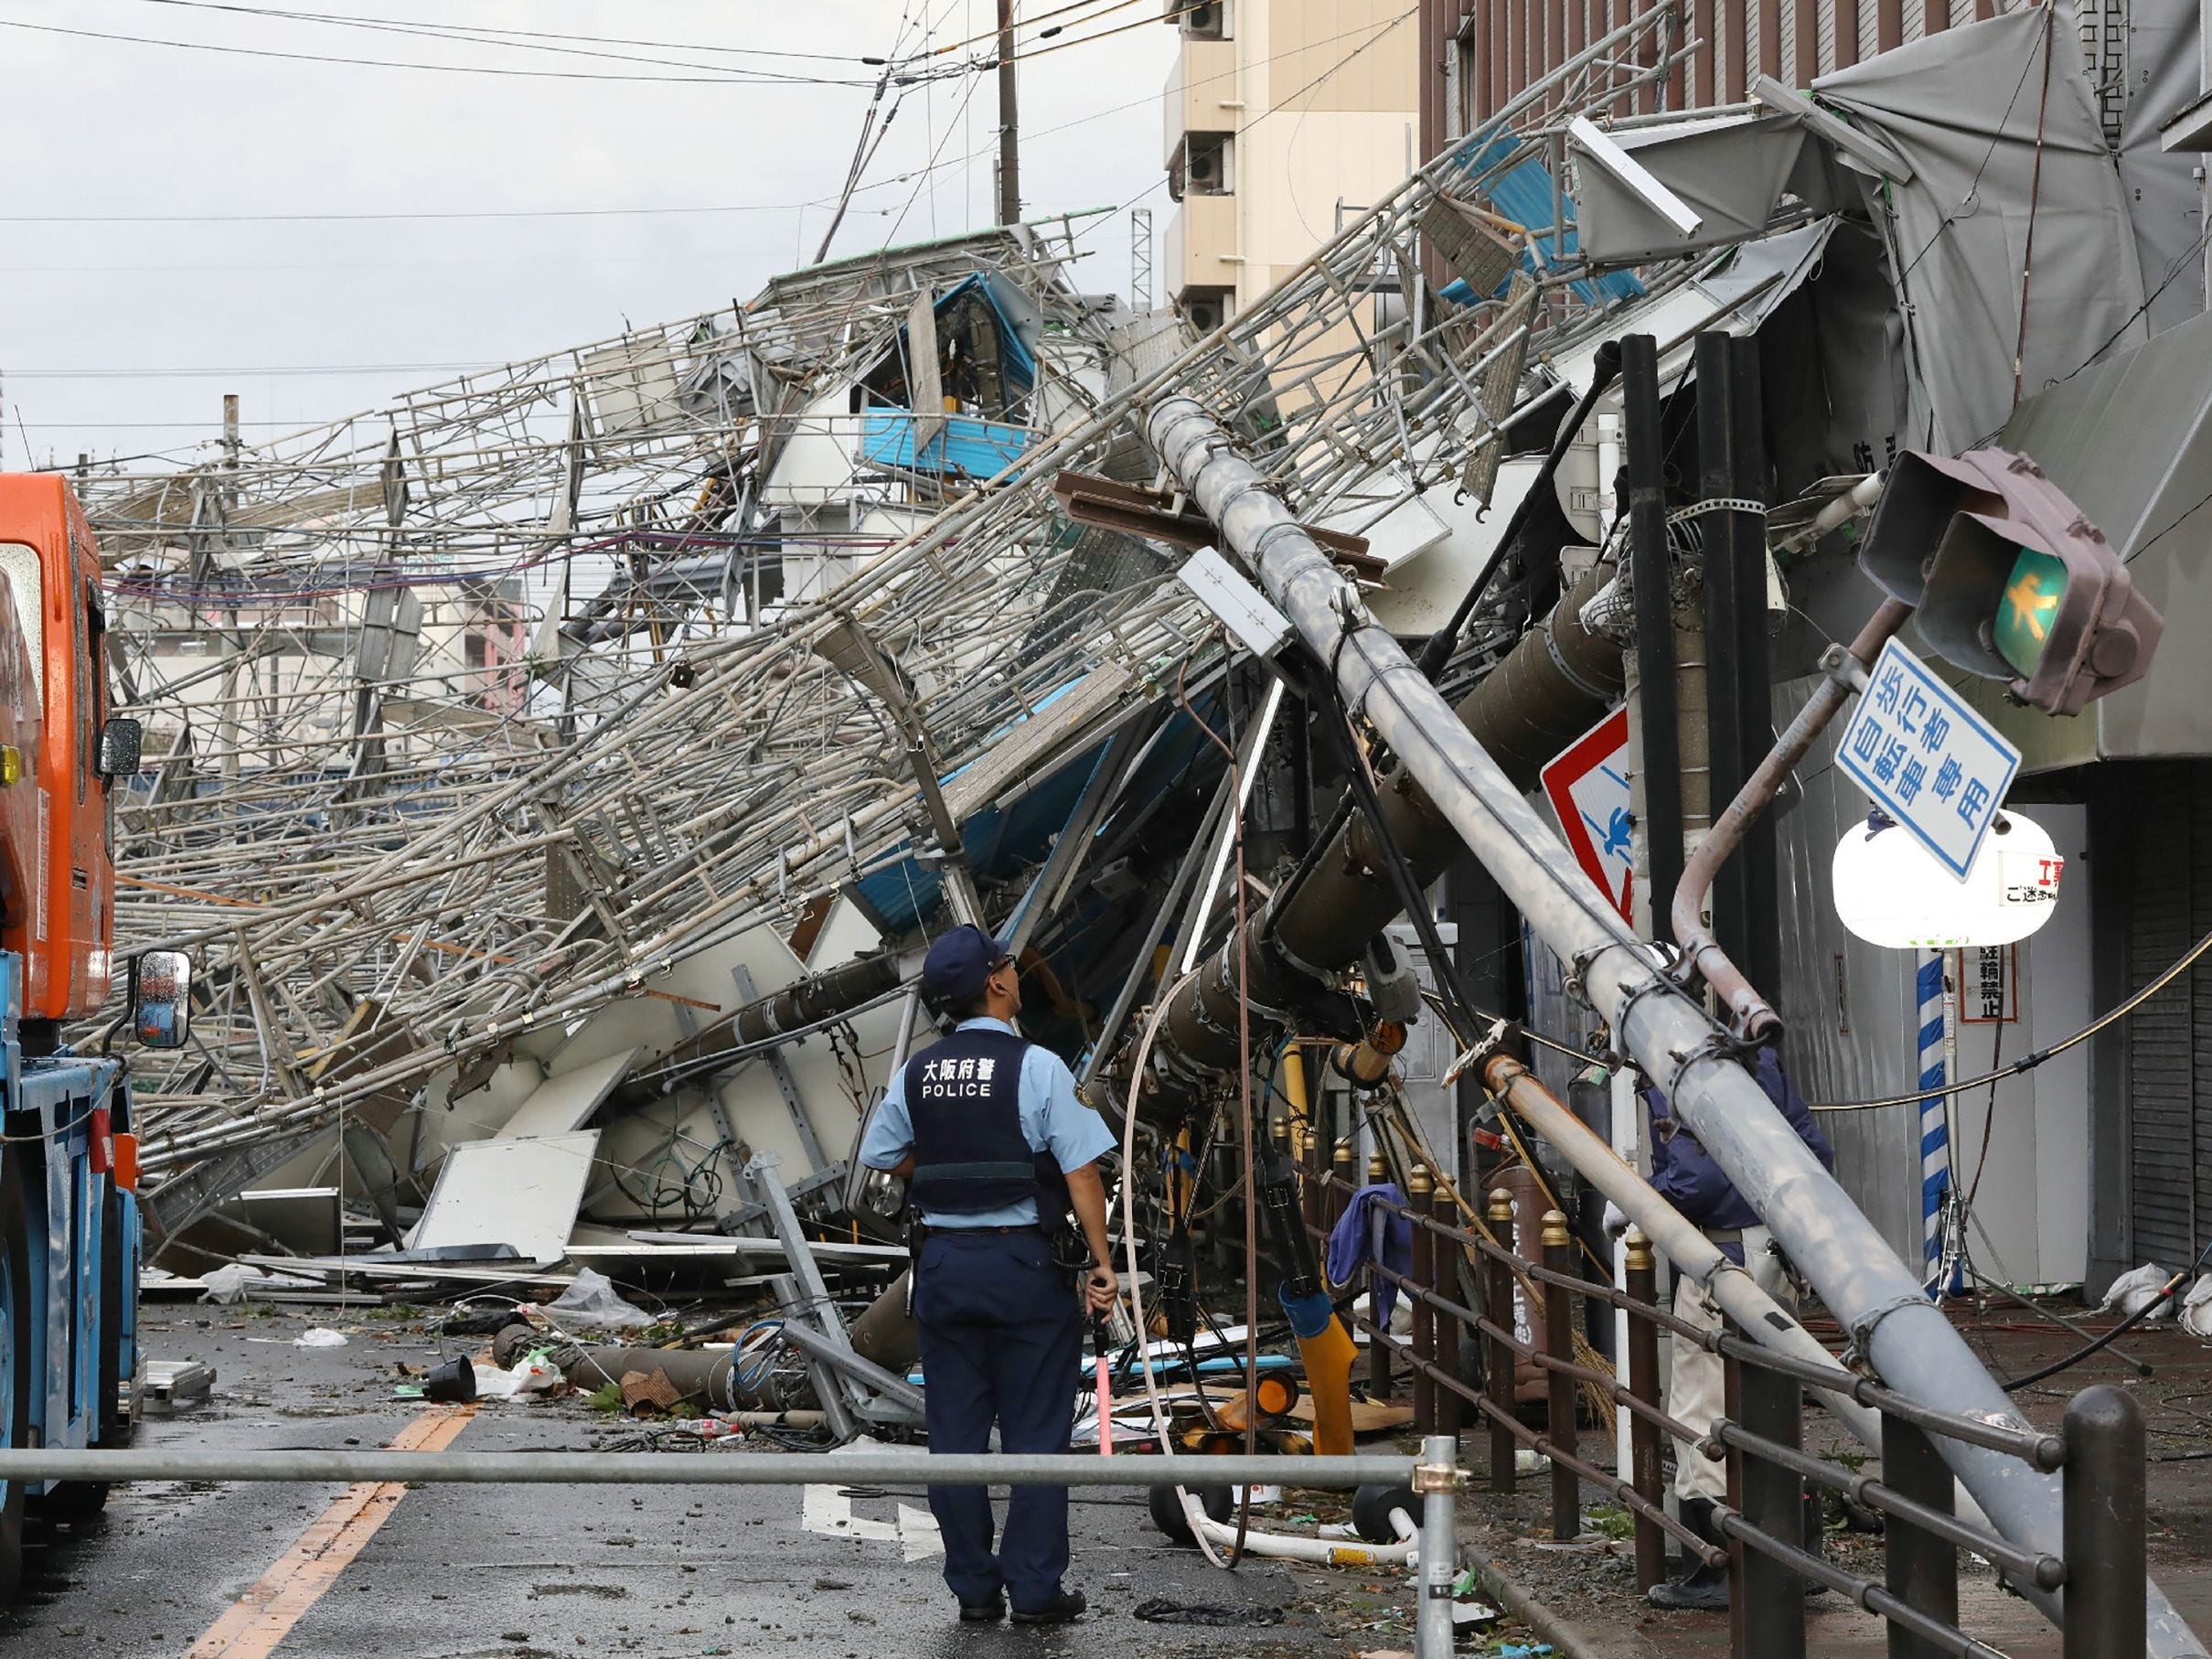 Damaged traffic boards and telecommunication relay poles are seen after they were brought down by strong winds caused by typhoon Jebi in Osaka on September 4, 2018. - The strongest typhoon to hit Japan in 25 years made landfall on September 4, the country's weather agency said, bringing violent winds and heavy rainfall that prompted evacuation warnings. (Photo by JIJI PRESS / JIJI PRESS / AFP) / Japan OUTJIJI PRESS/AFP/Getty Images ORIG FILE ID: AFP_18U3QP